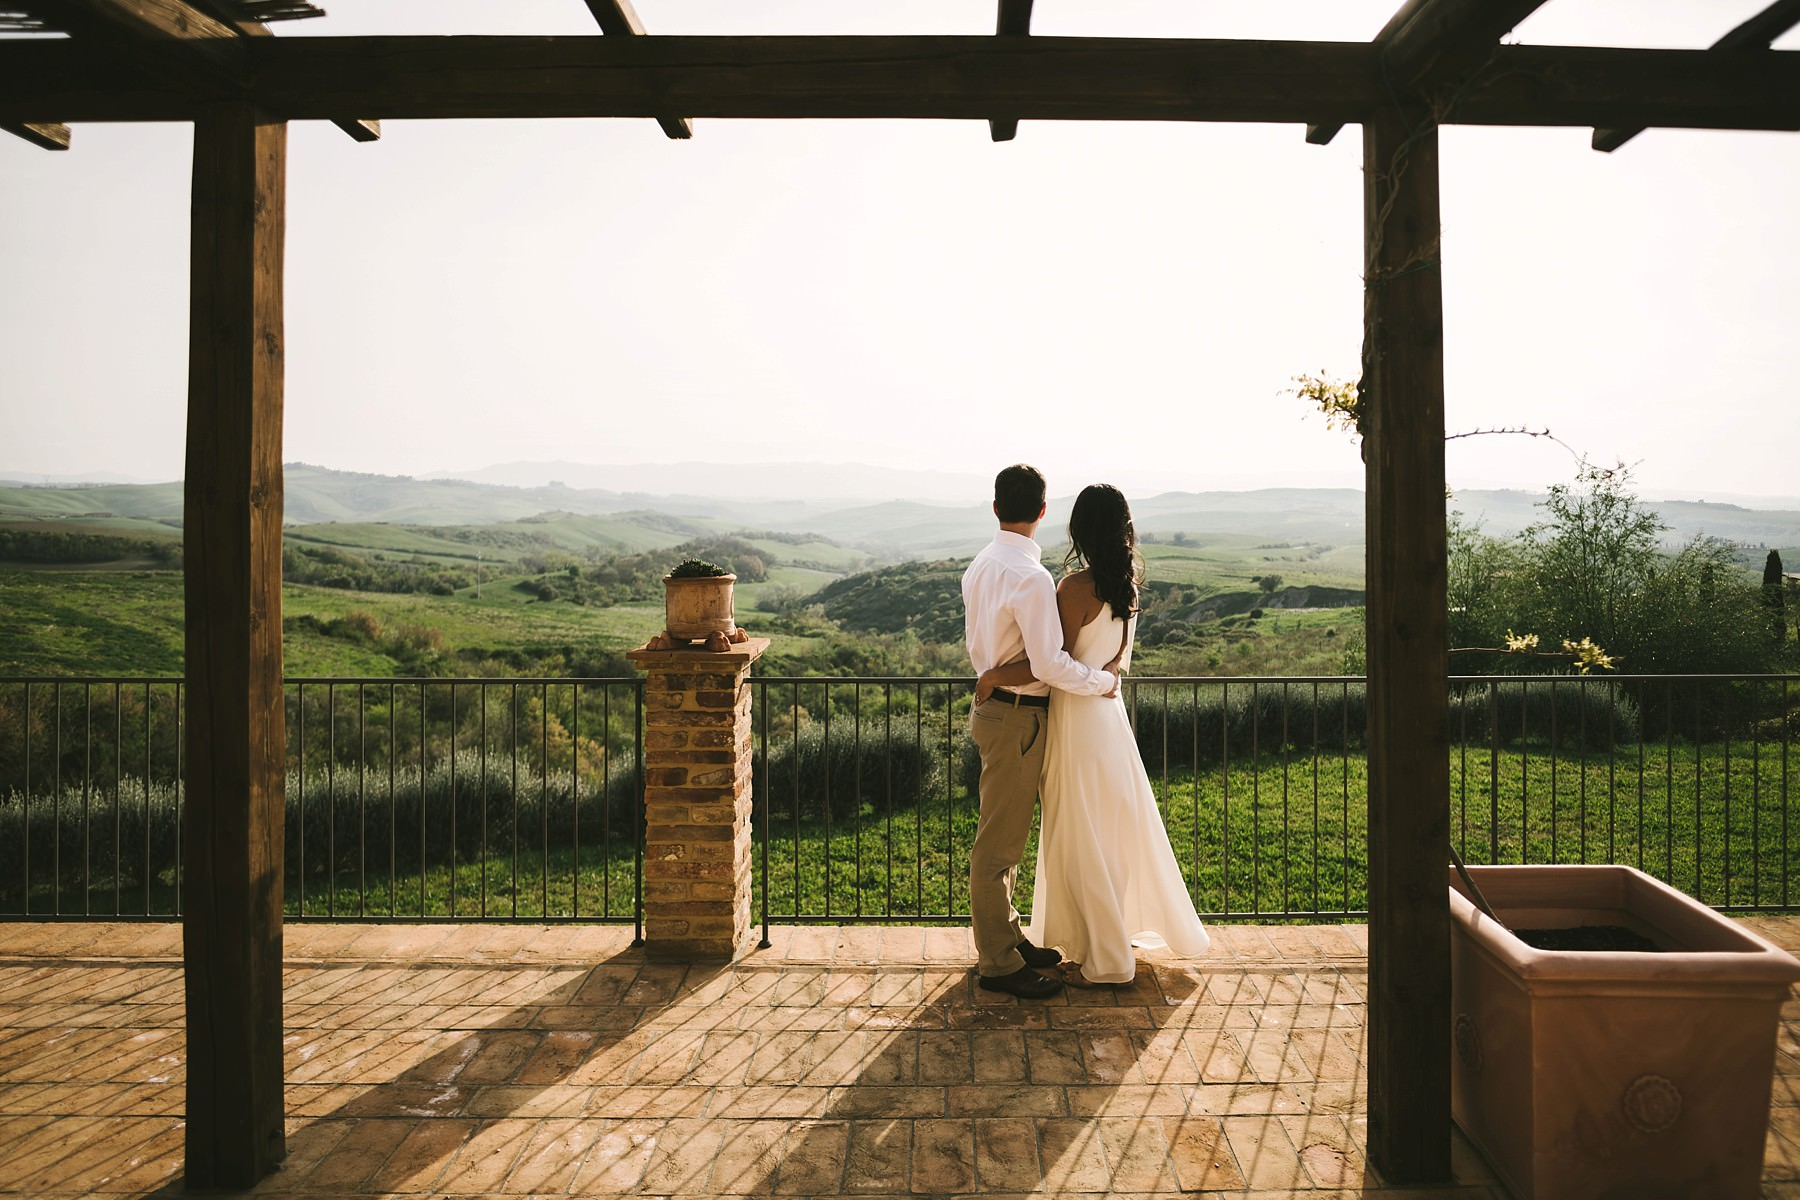 Creative and modern anniversary couple photo shoot in Tuscany countryside near the town of Iano